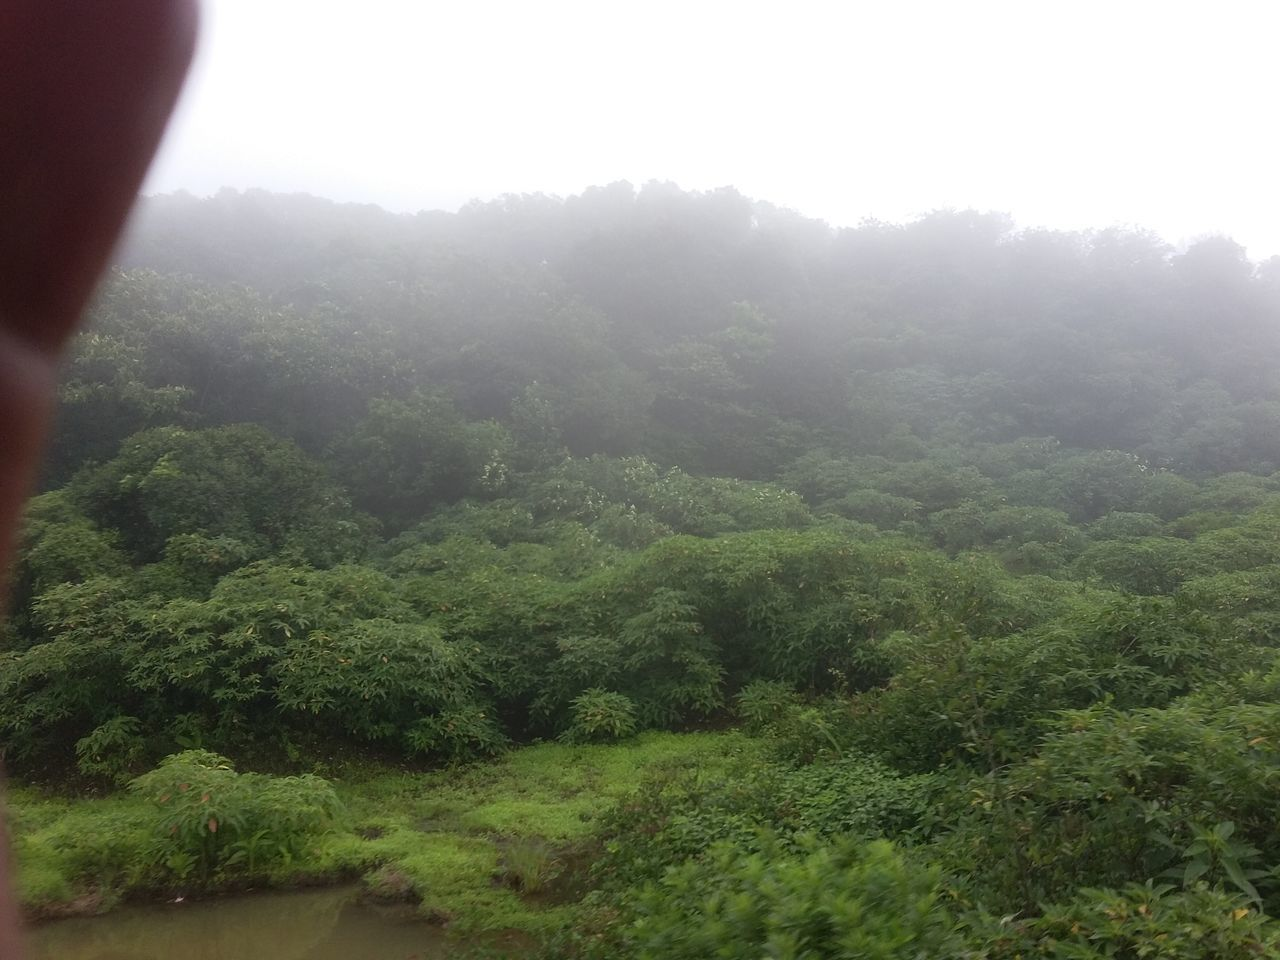 nature, tree, landscape, beauty in nature, plant, growth, fog, day, tranquil scene, tranquility, no people, outdoors, scenics, forest, mountain, freshness, sky